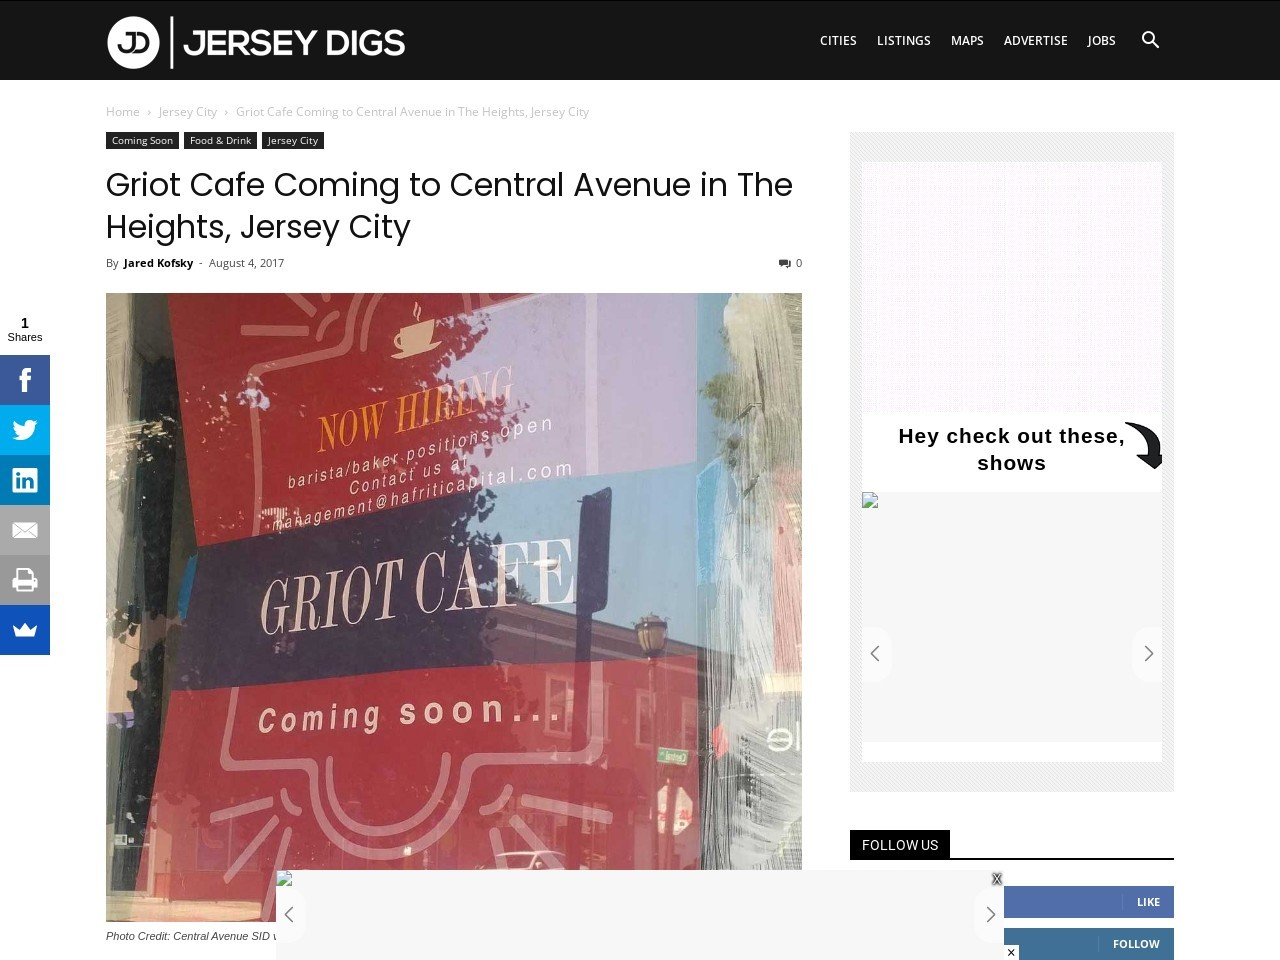 Griot Cafe Coming to Central Avenue in The Heights, Jersey City